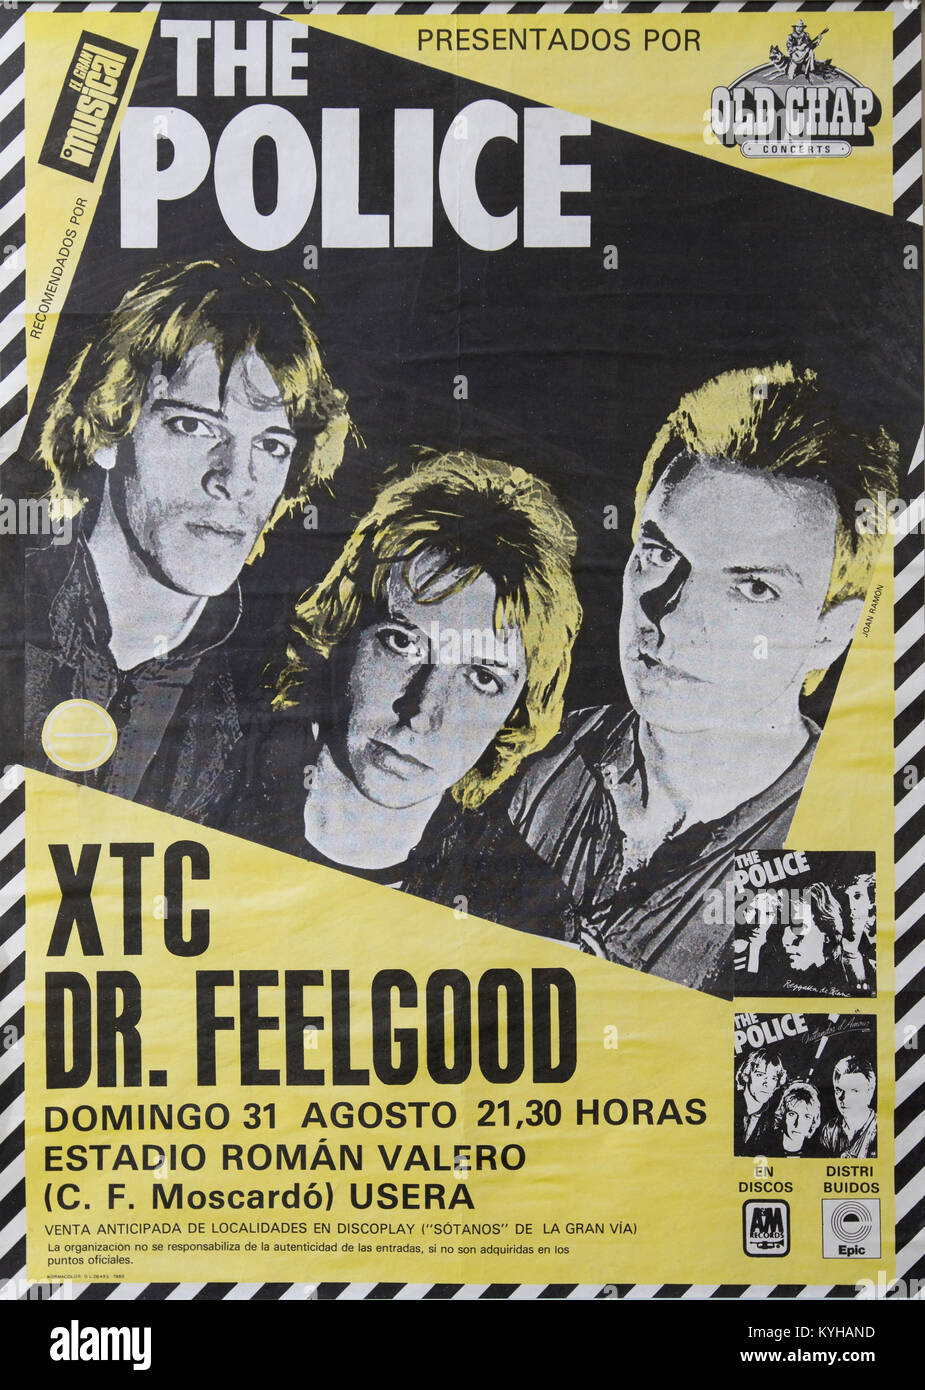 The Police, Sting, Stewart Copeland and Andy Summers,  Musical concert poster. Life event in Madrid - Stock Image